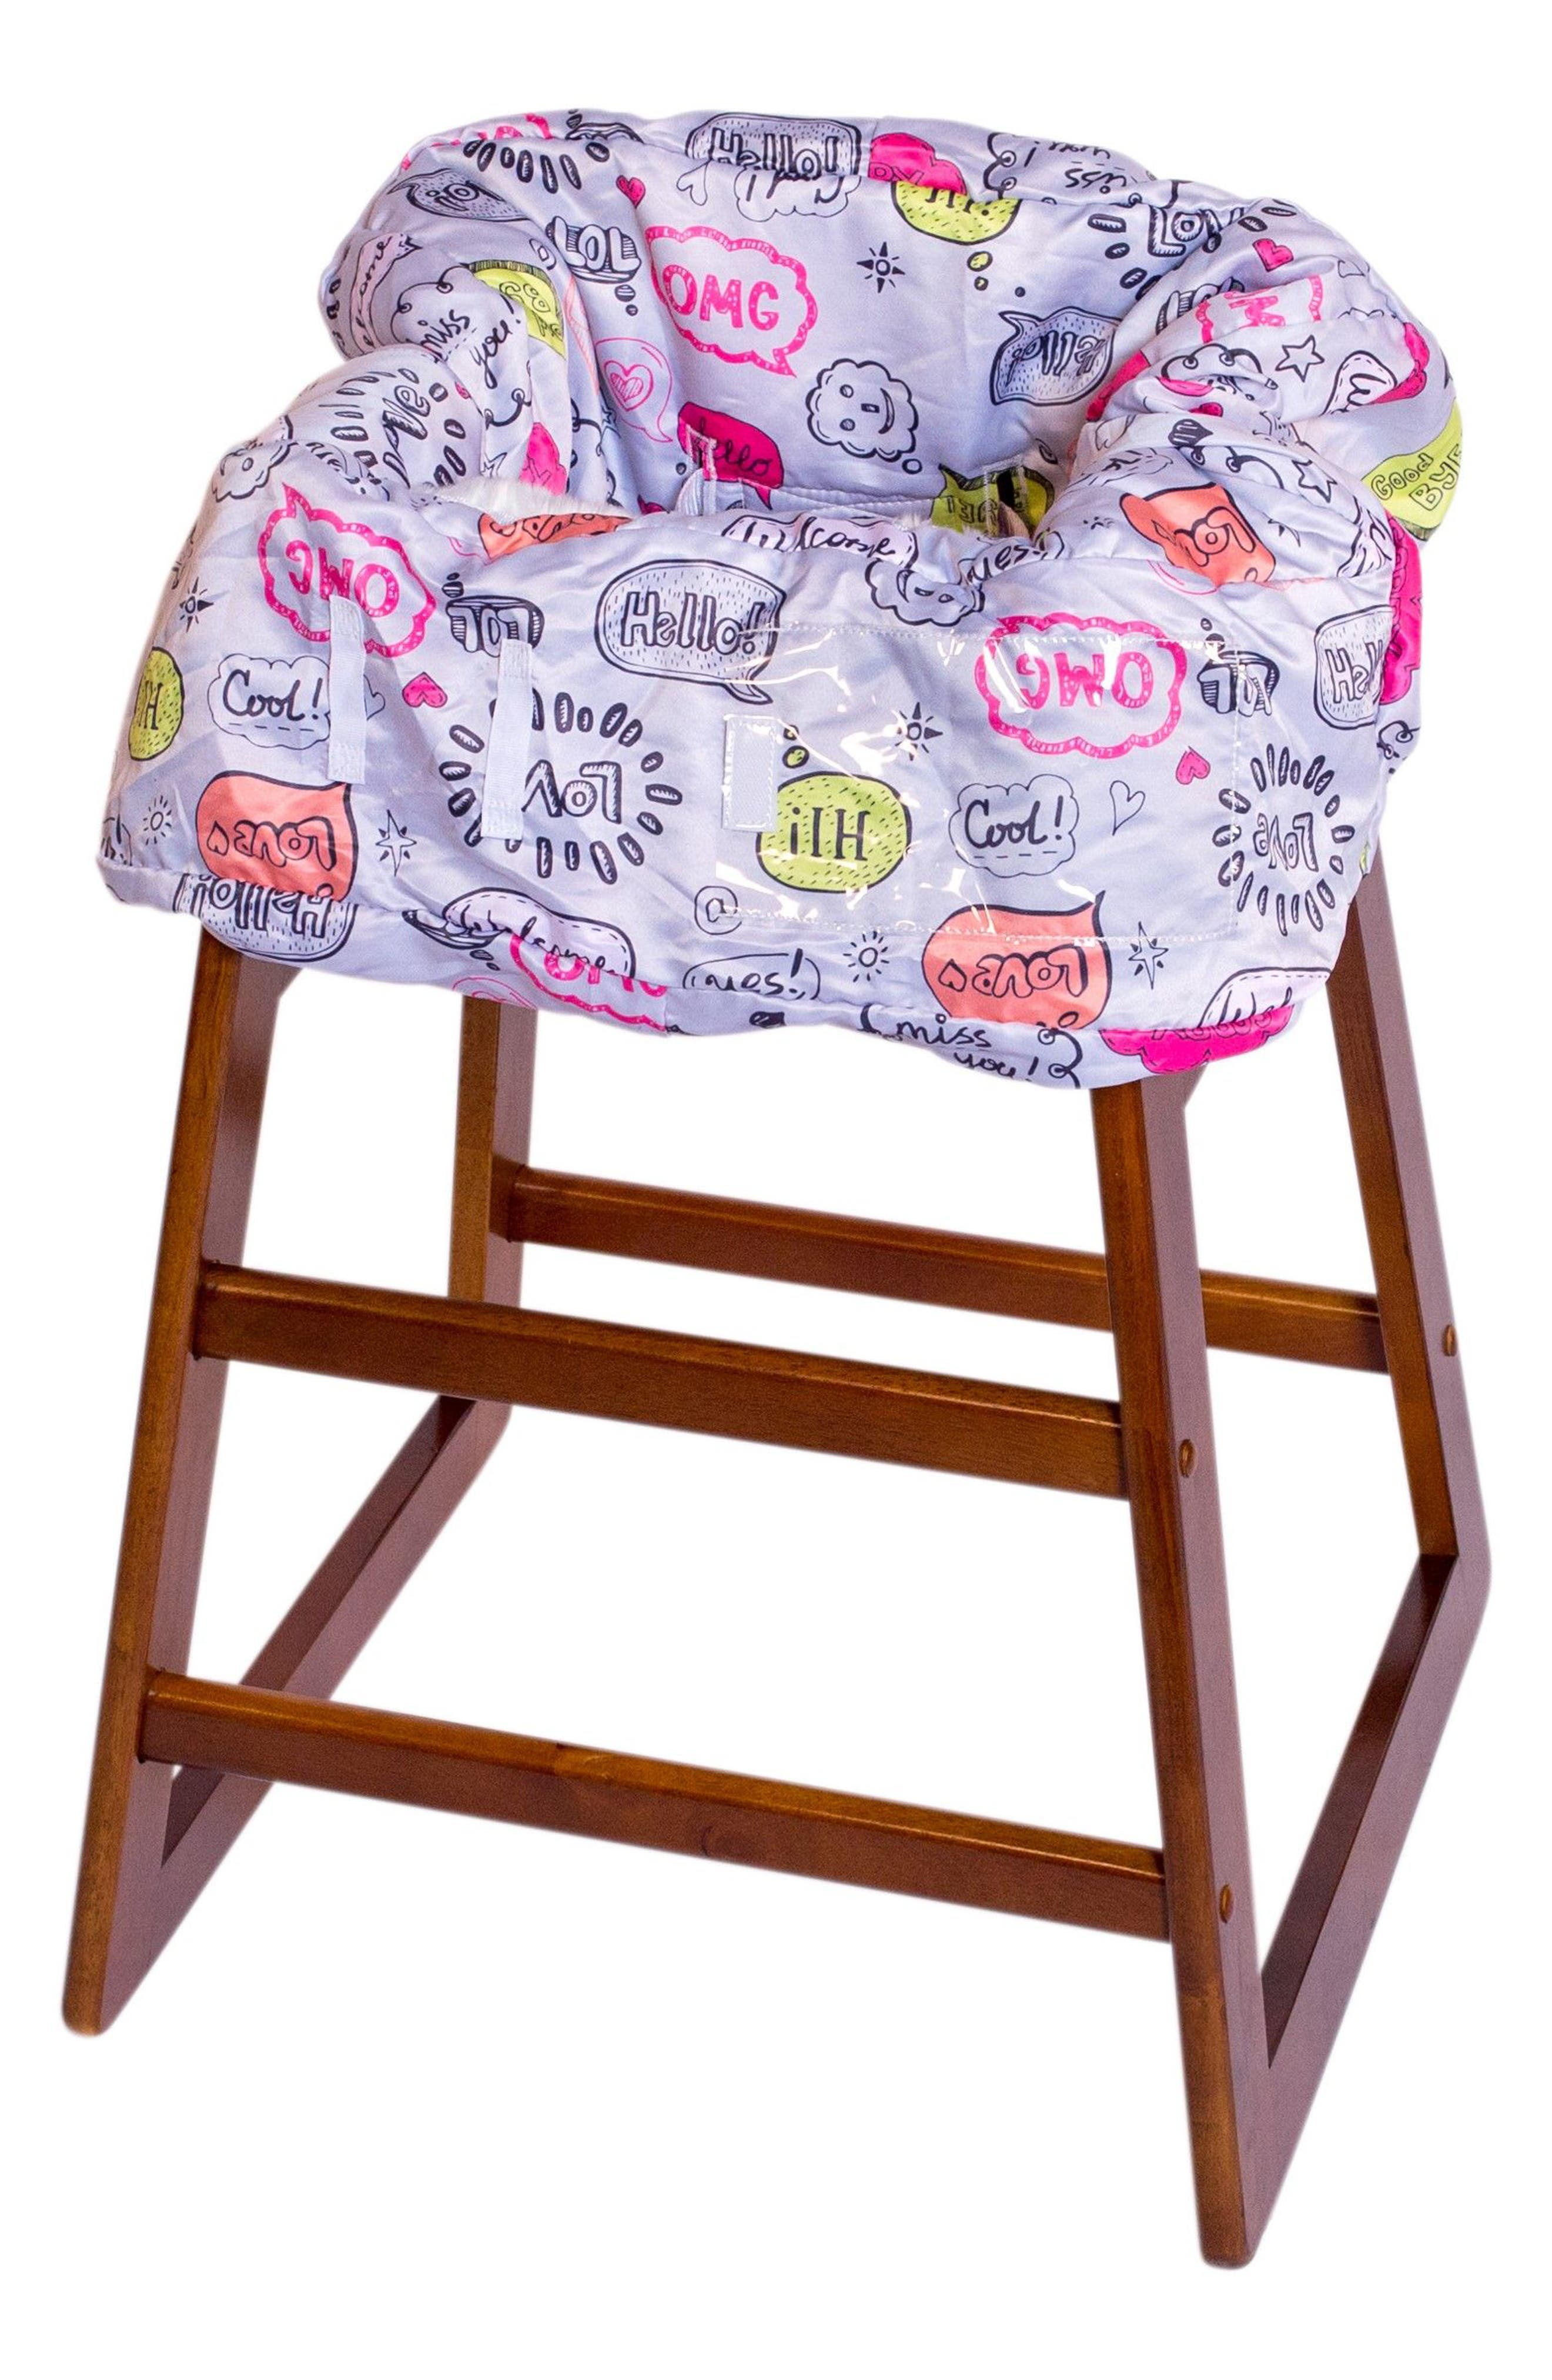 Highchair/Shopping Cart Cover,                             Alternate thumbnail 2, color,                             020